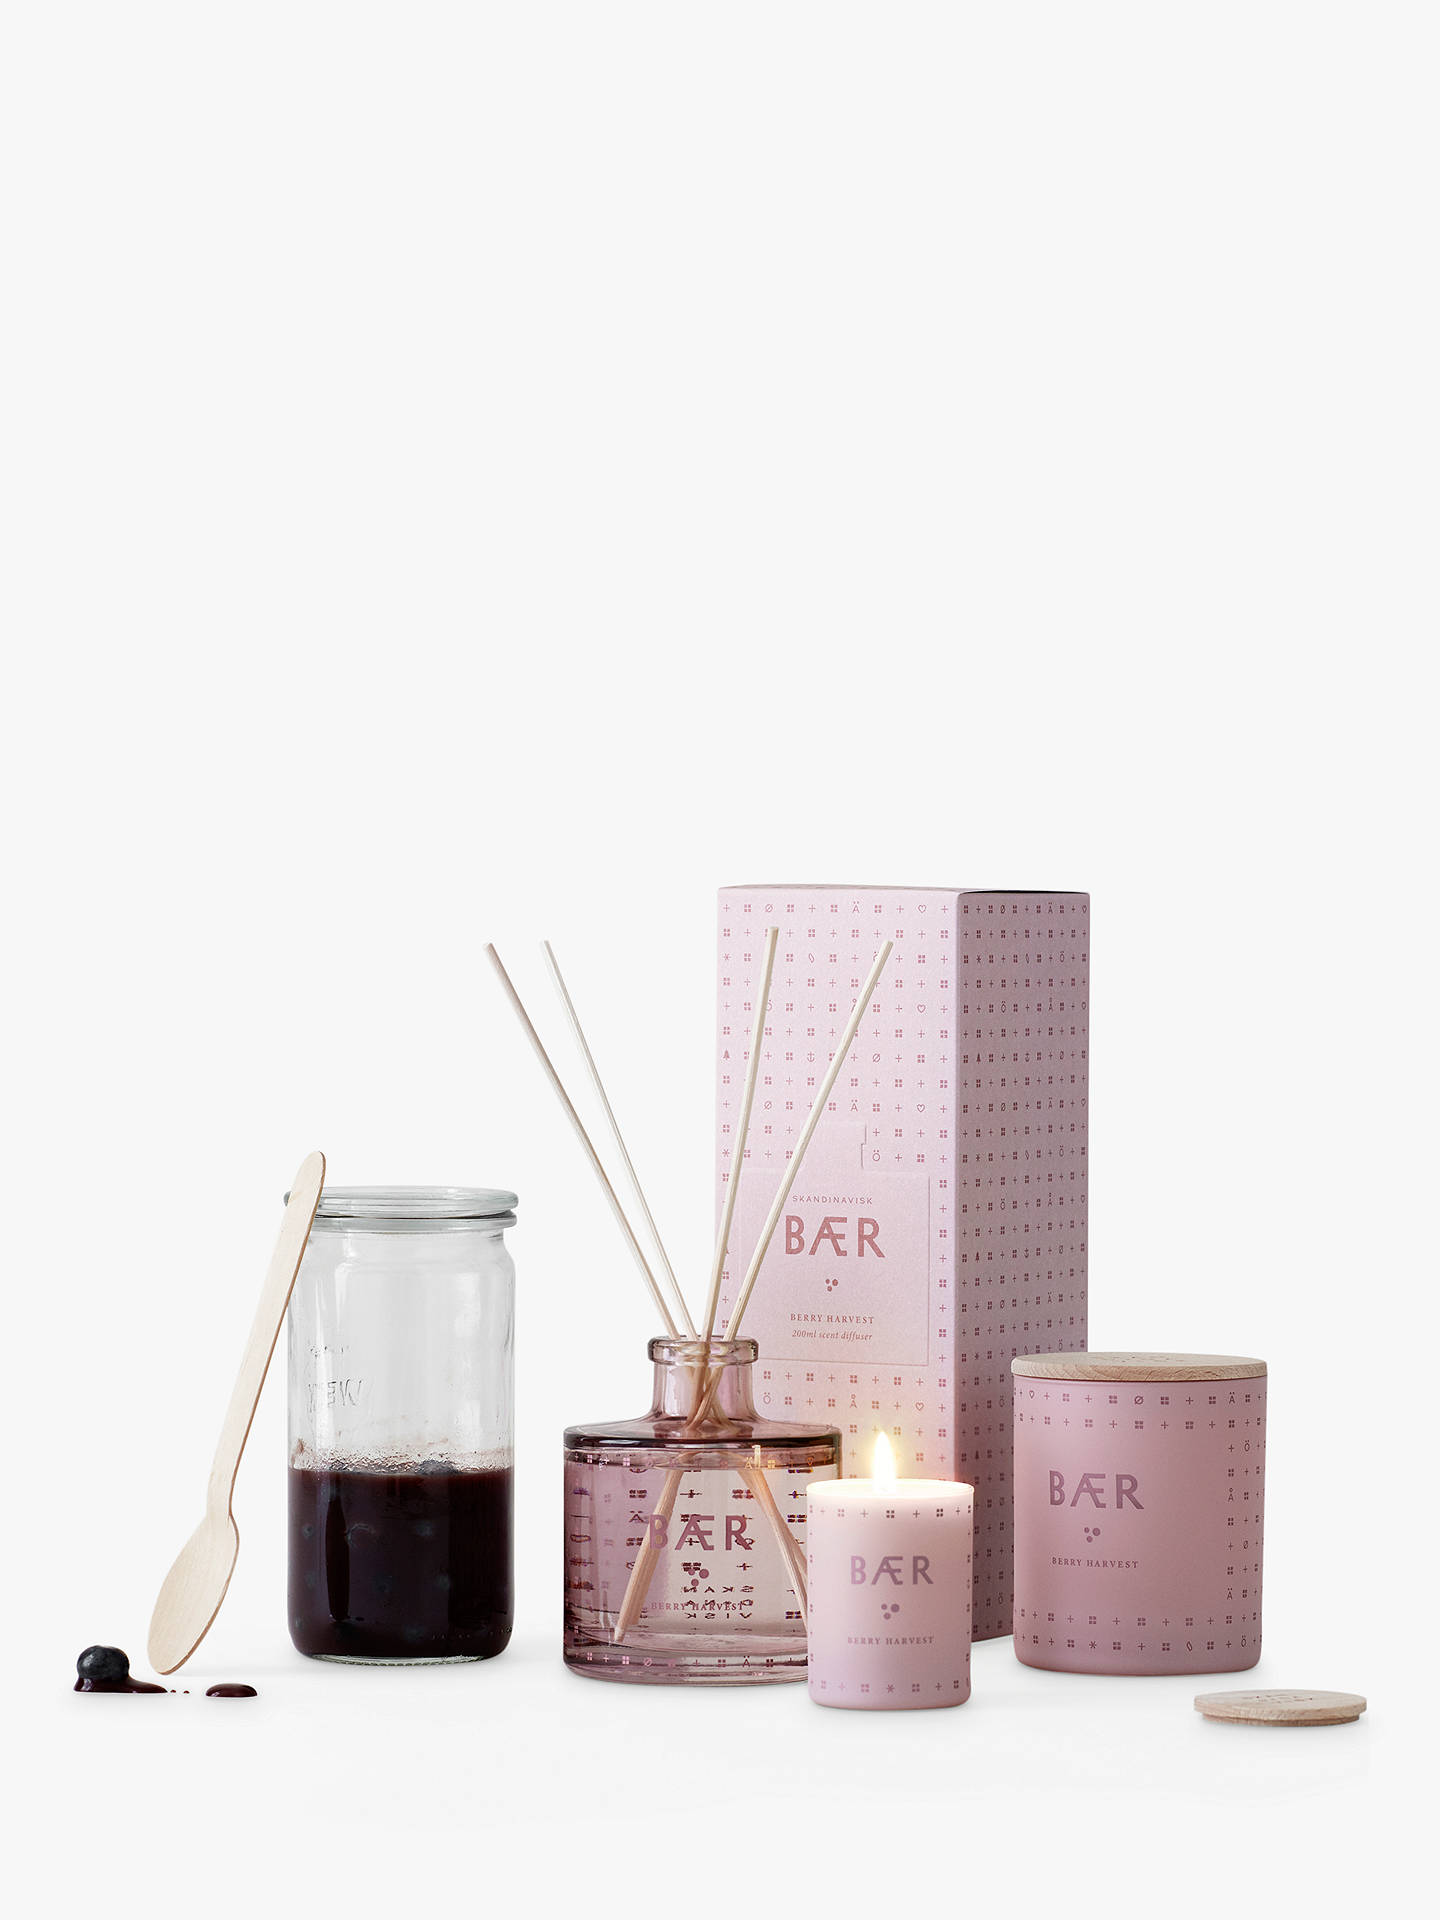 Buy SKANDINAVISK Baer Reed Diffuser, 200ml Online at johnlewis.com